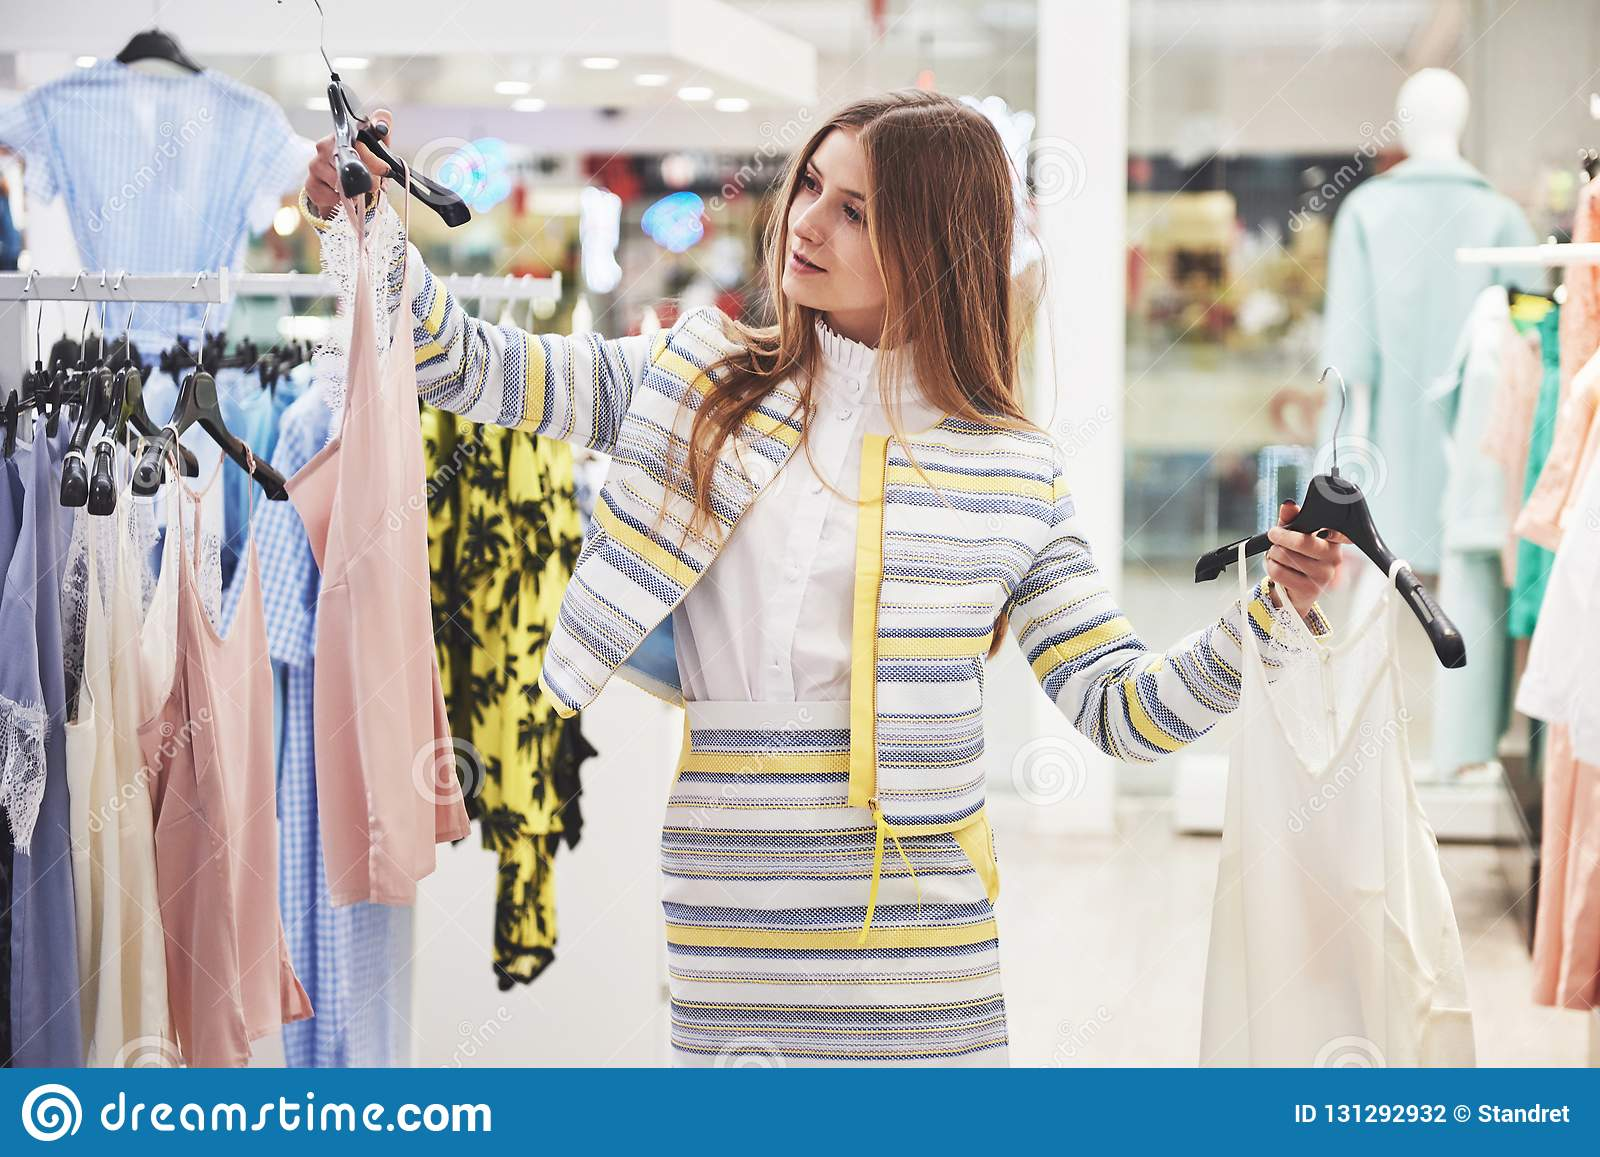 Sale, fashion, consumerism and people concept - happy young woman with shopping bags choosing clothes in mall or